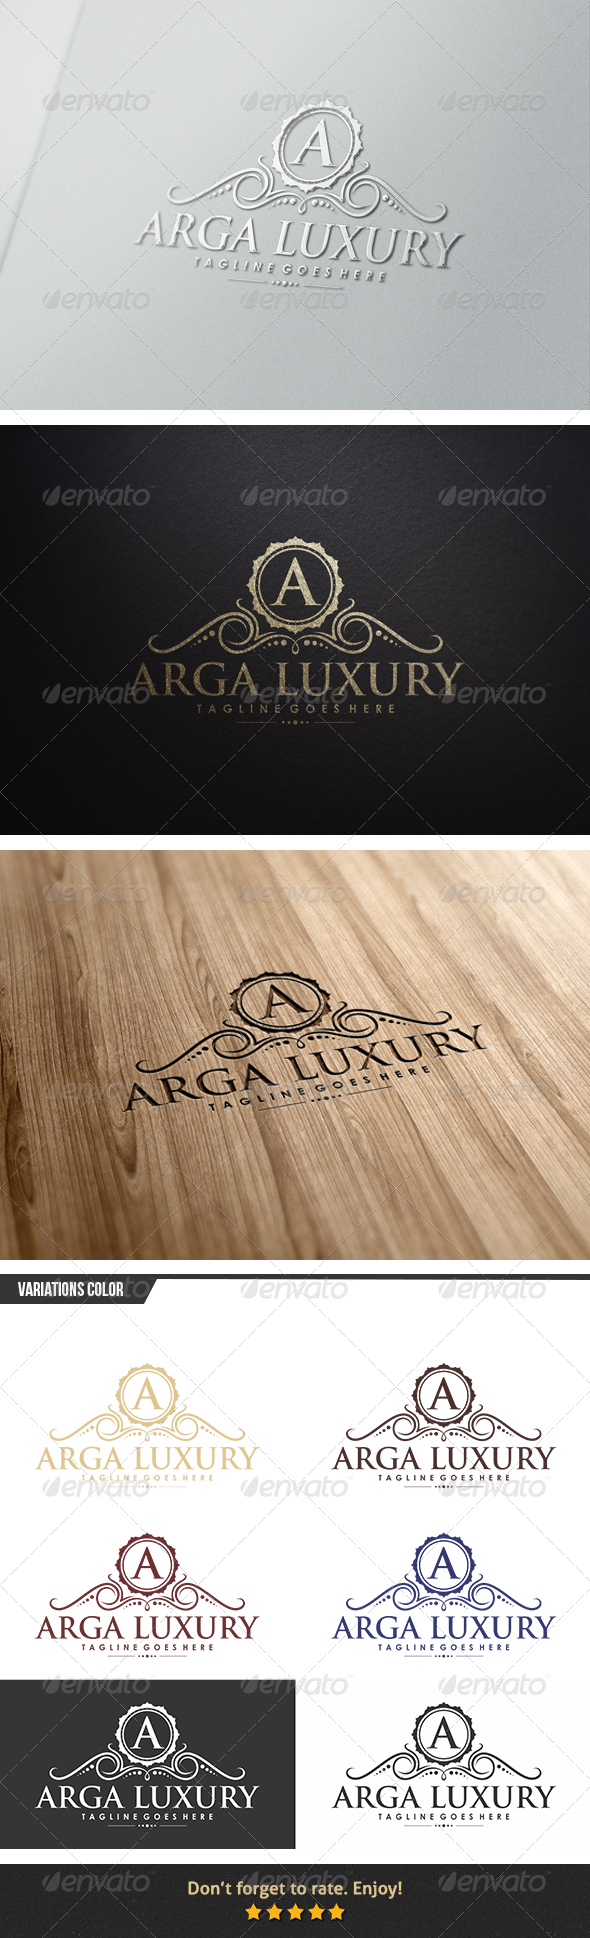 Arga Luxury Logo - Crests Logo Templates